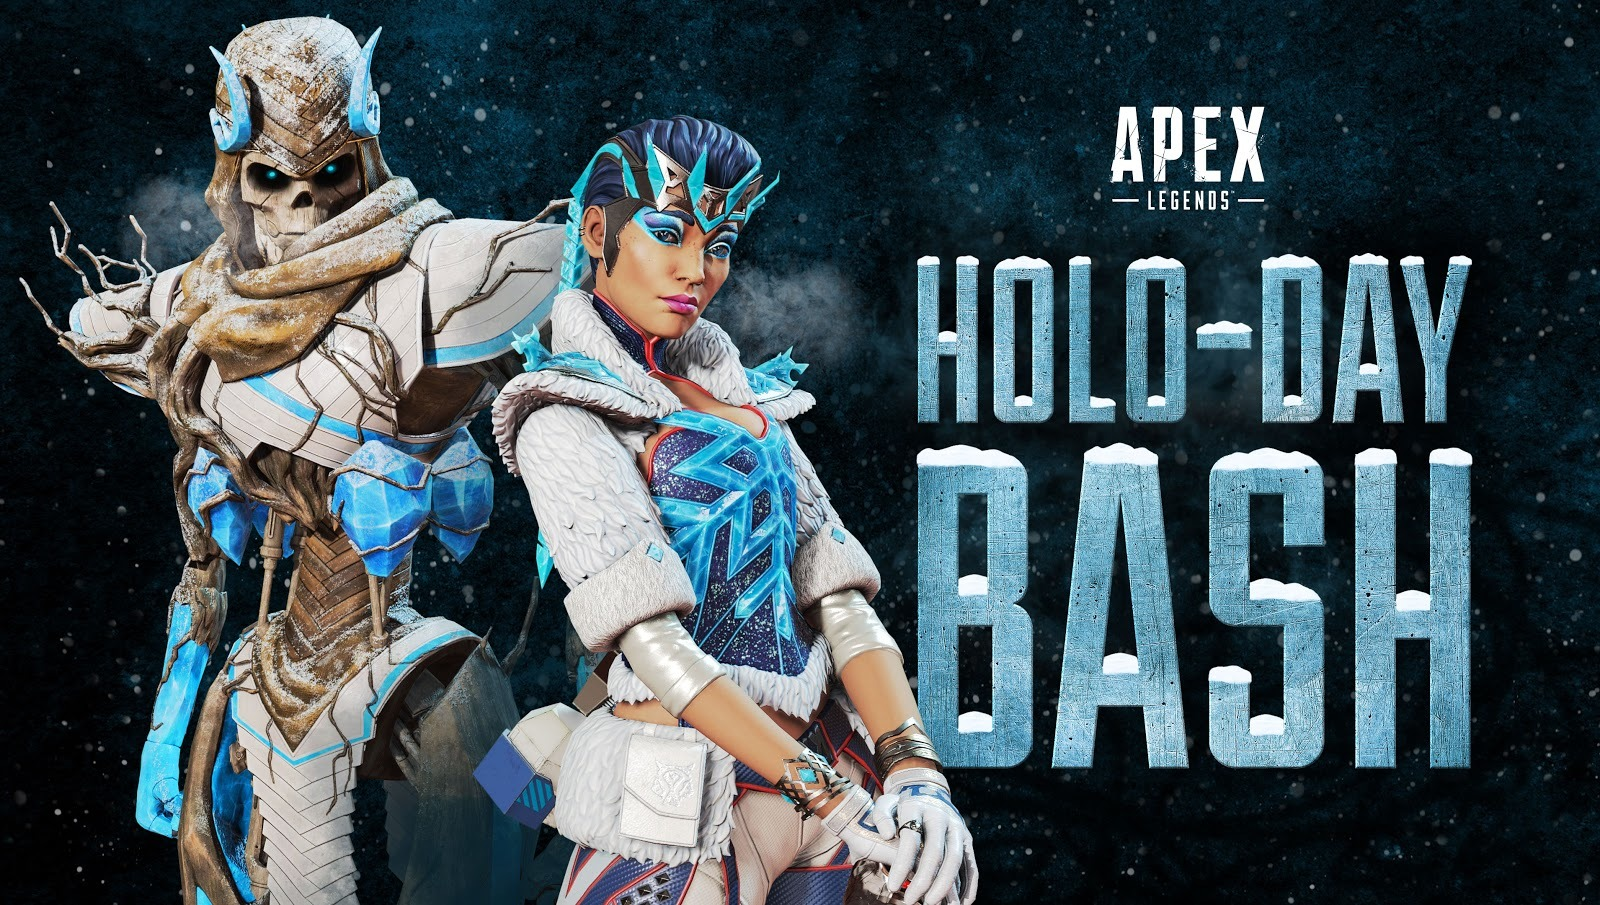 Apex Legends' Holo-Day Bash is live with the Winter Express limited-time mode